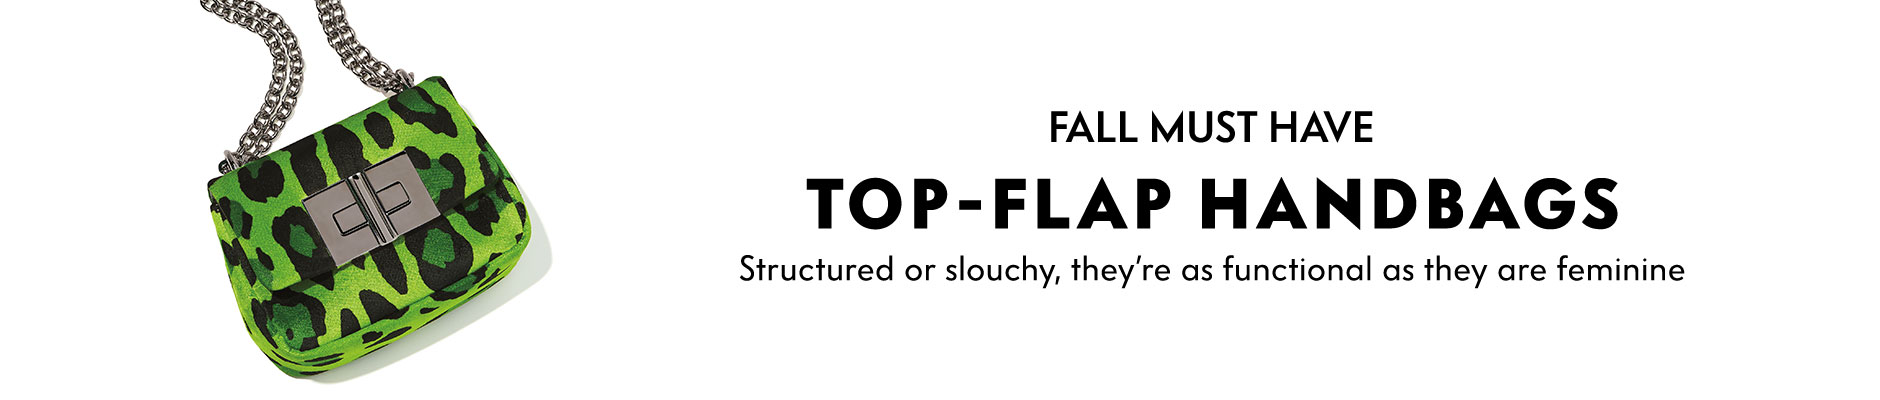 Fall Must Have: Top-Flap Handbags - Structured or slouchy, they're as functional as they are feminine